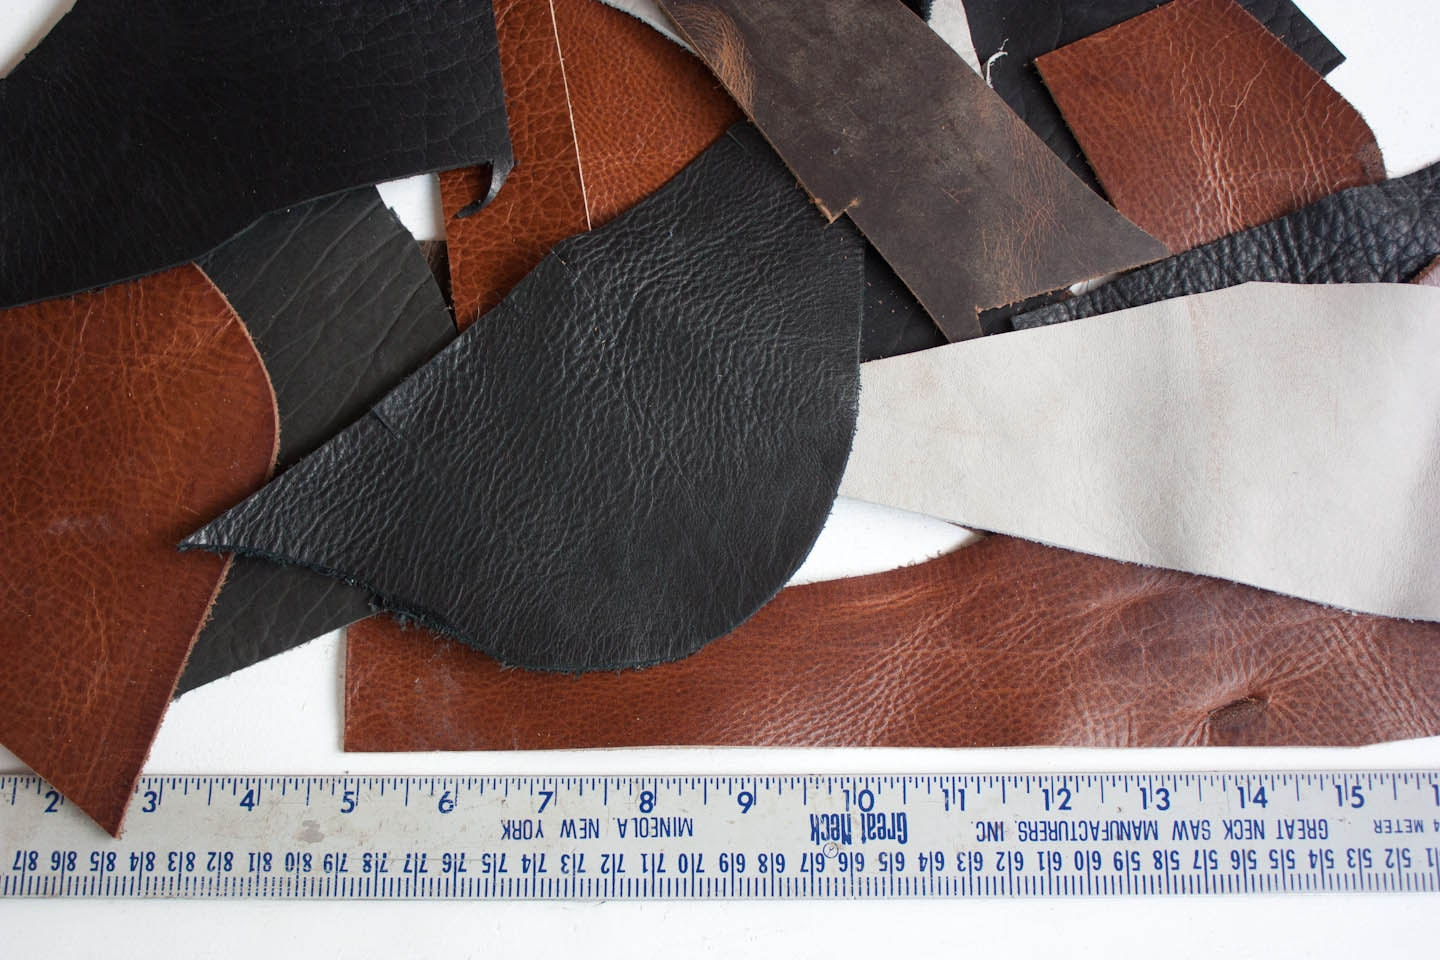 Leather scraps for crafts - Sold By Heistjewelry